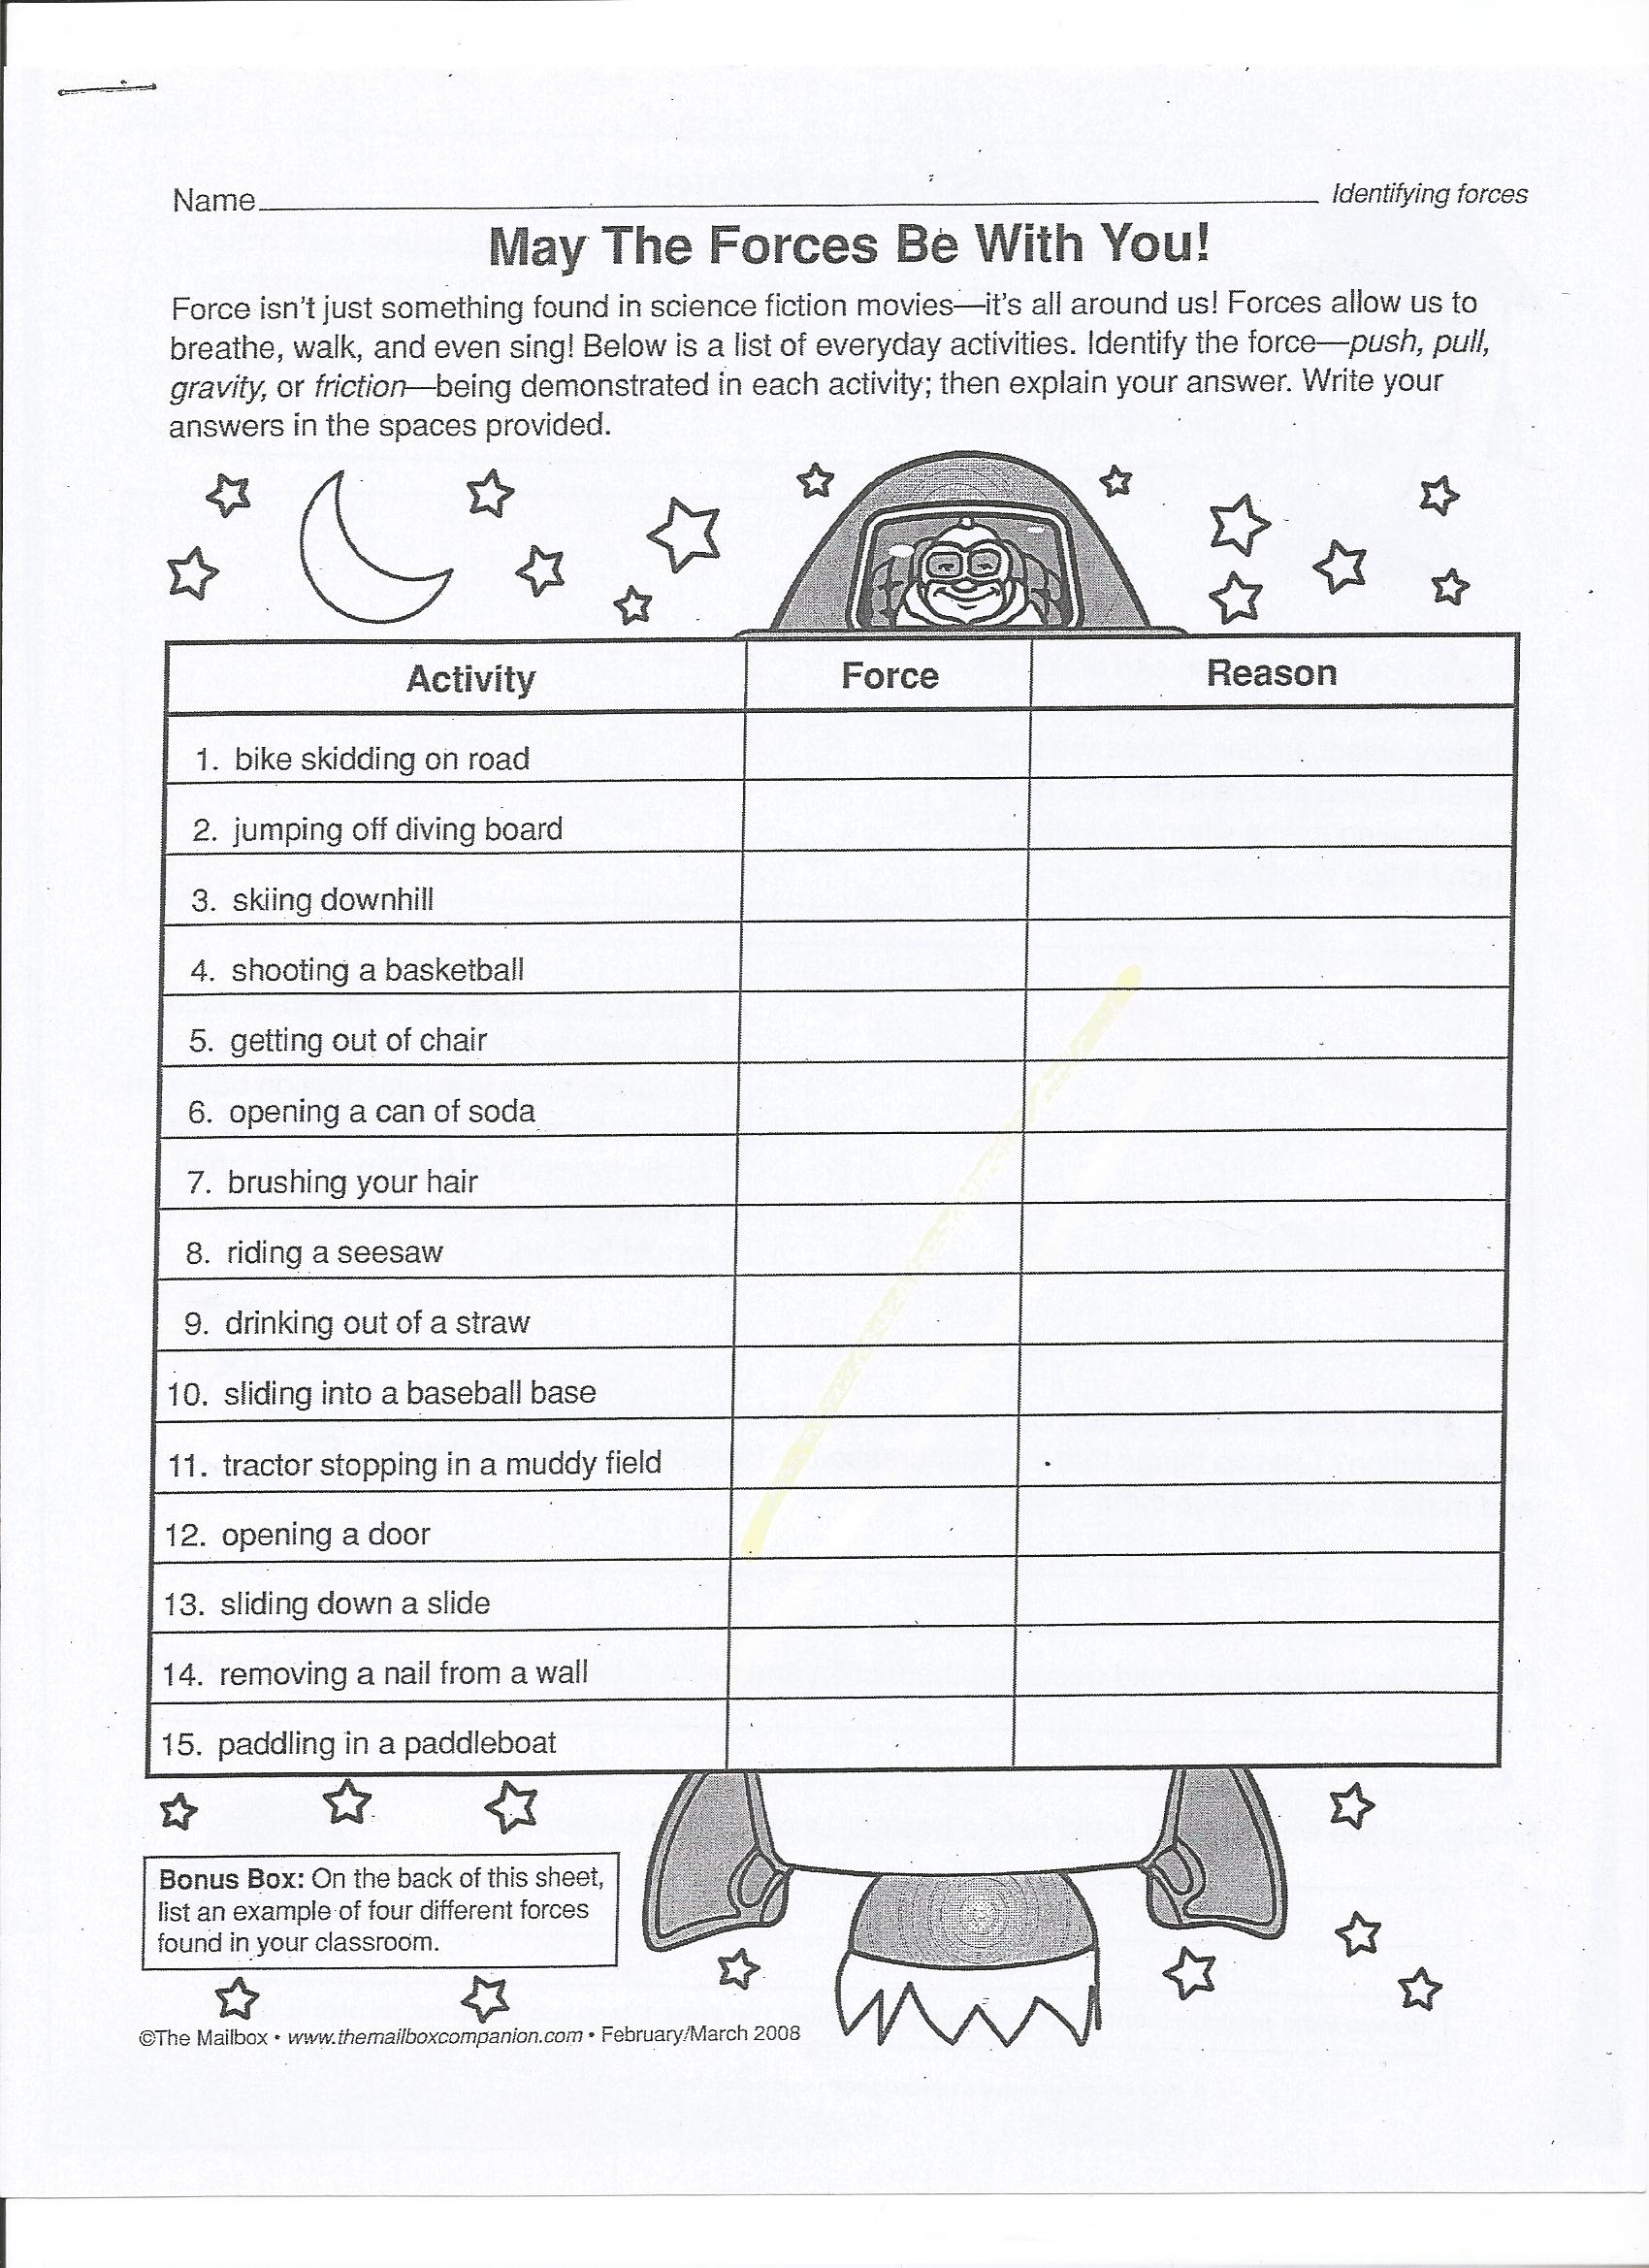 Worksheet Force And Motion Worksheets force and motion mrs wells class may the forces be with you